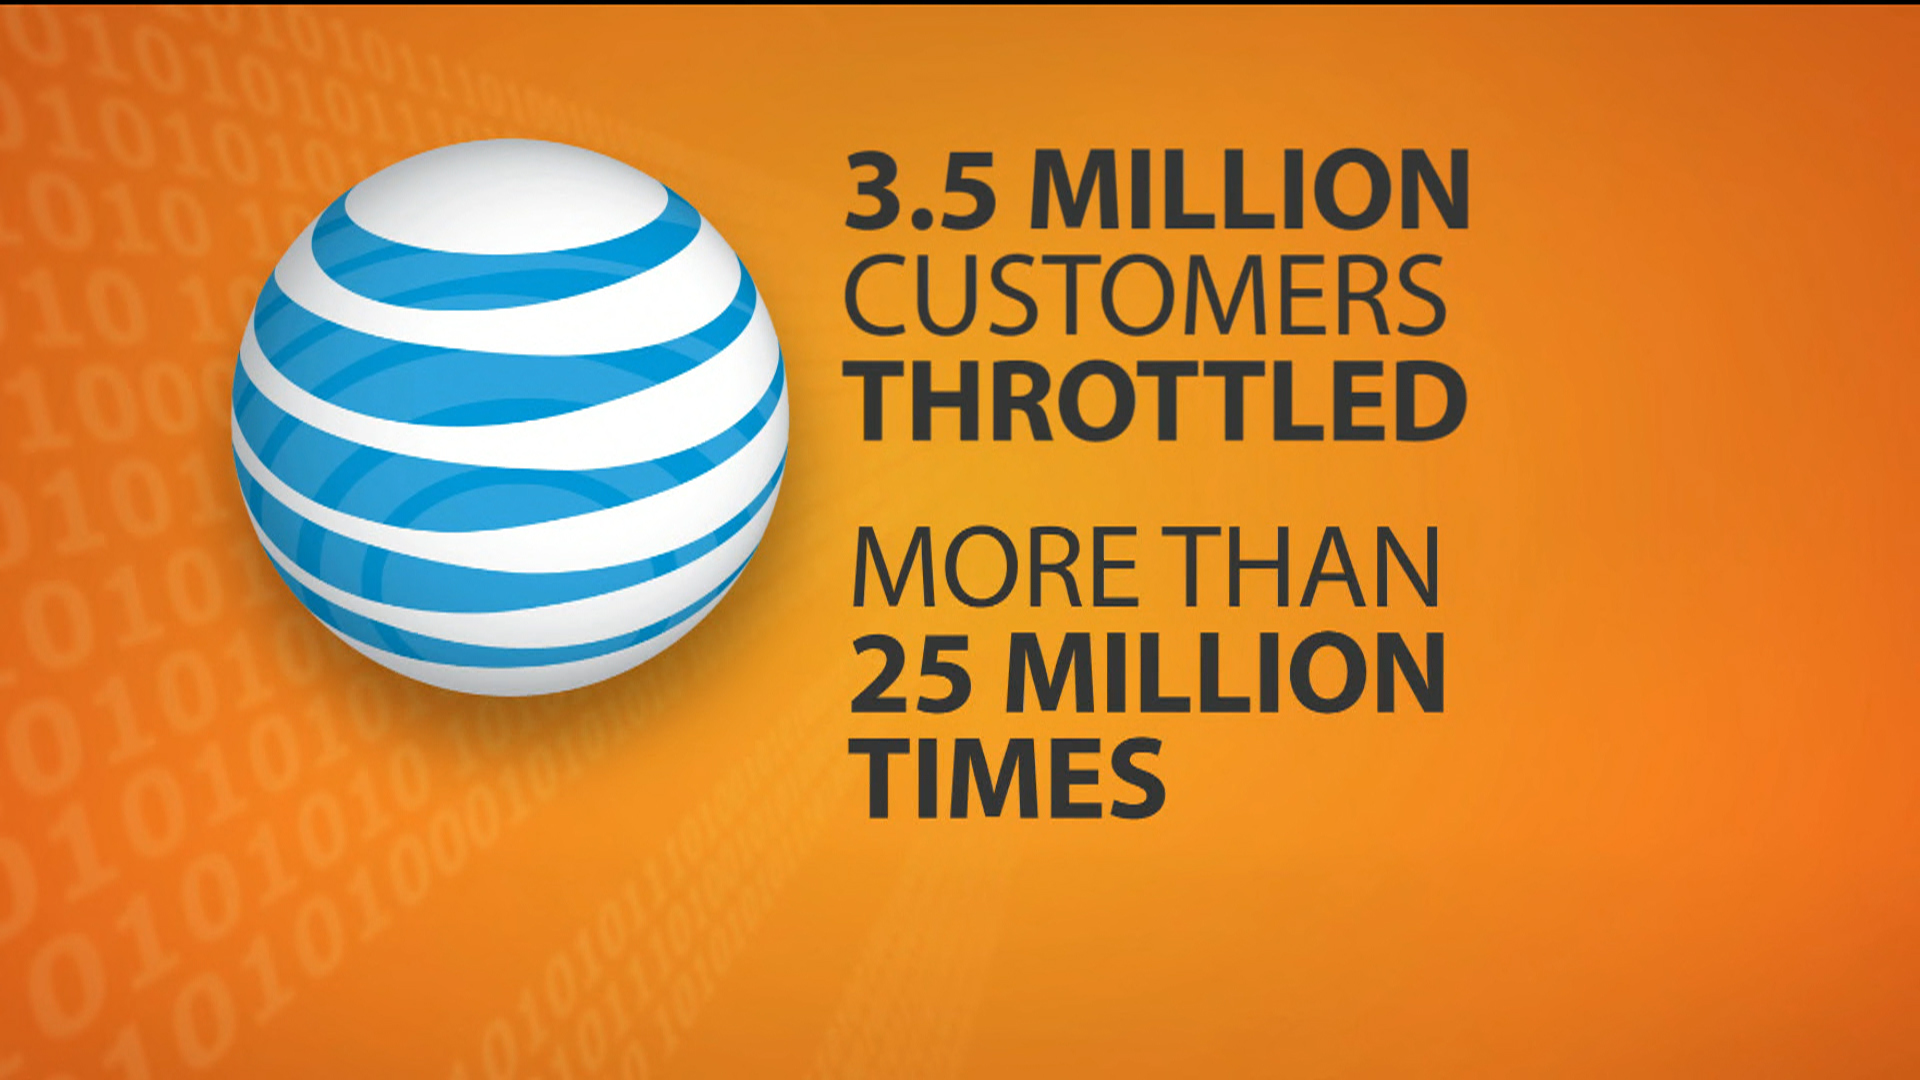 Feds Sue AT&T for 'Unfair' Slowing of Mobile Customer Data